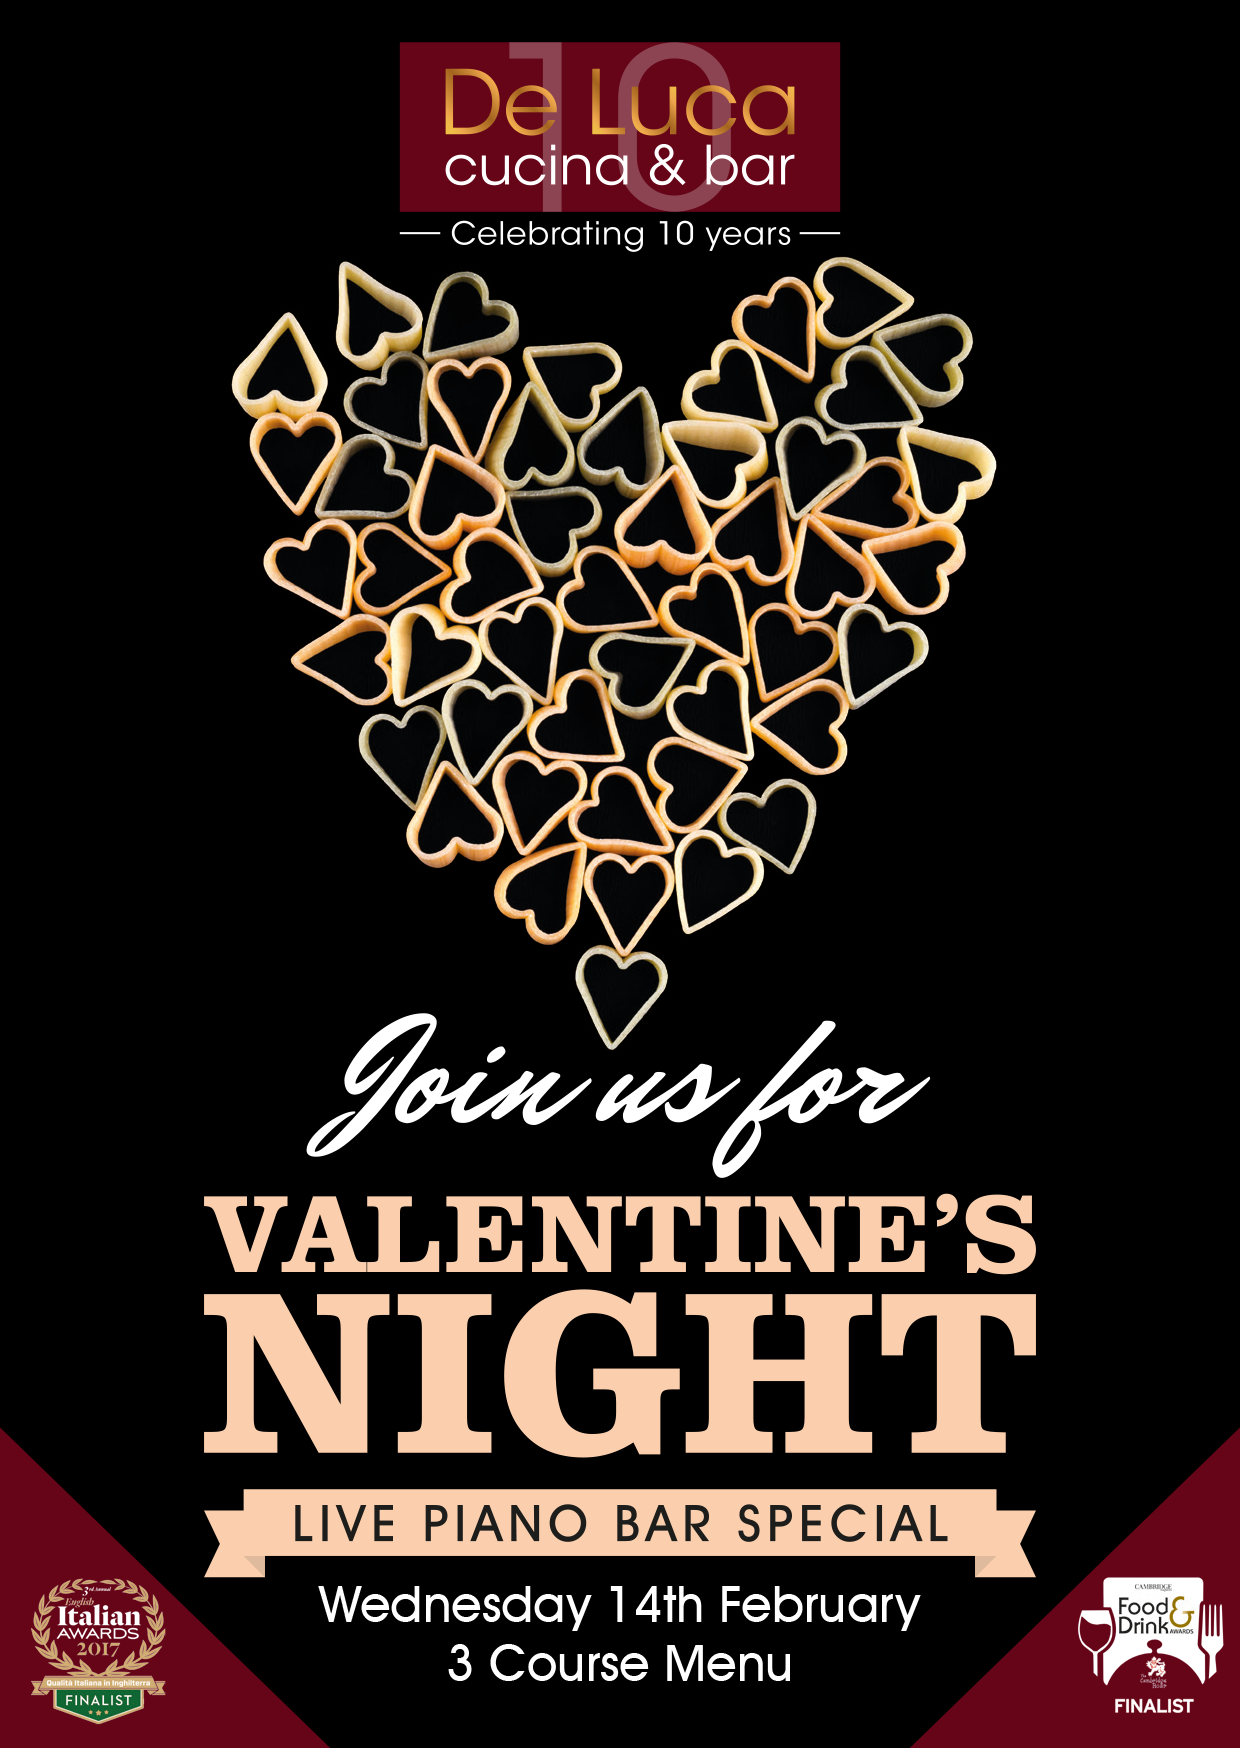 Valentine's Day: Three-course meal & love songs in Piano Bar